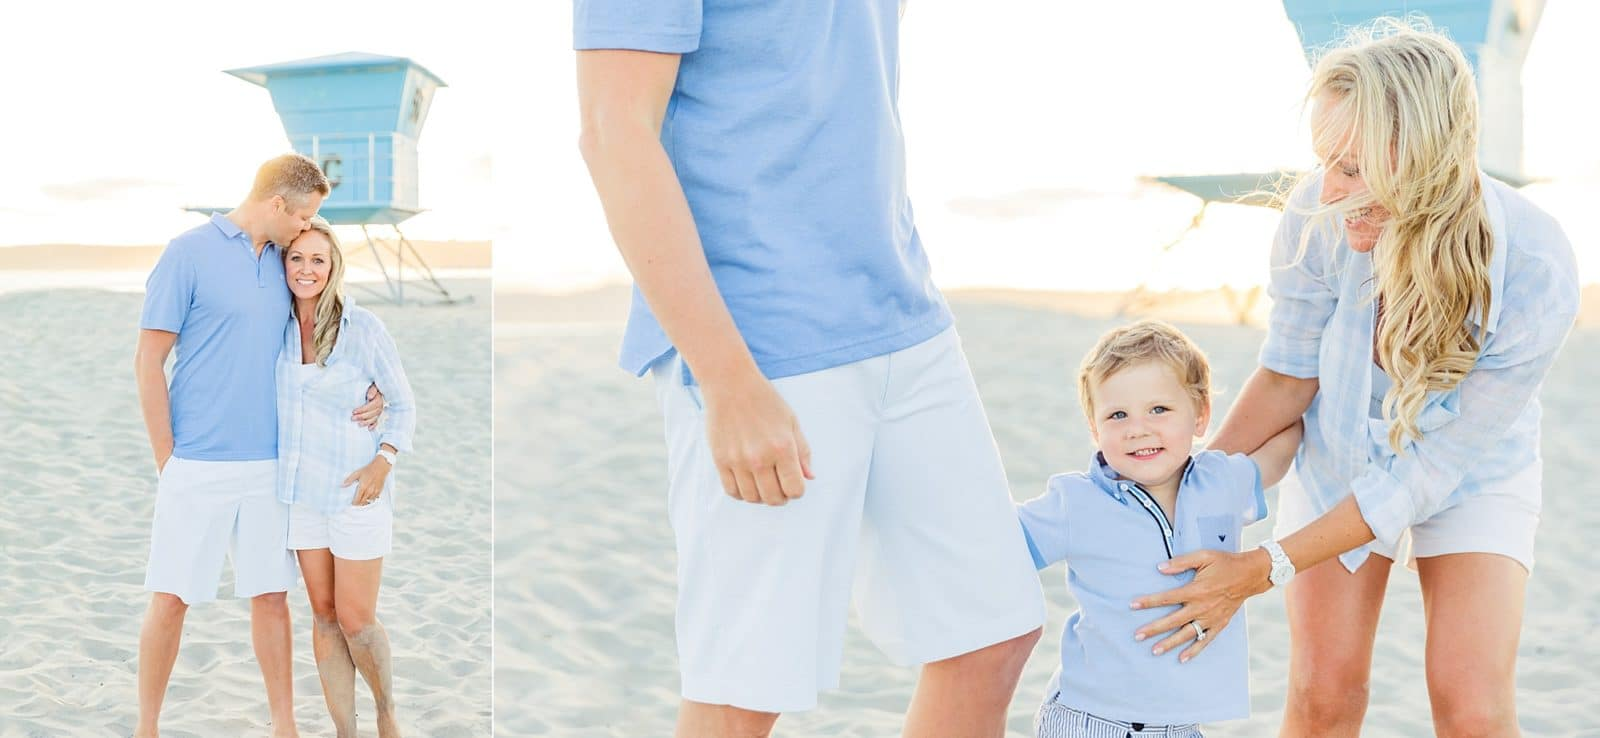 San Diego Family Photographer | Amy Gray Photography